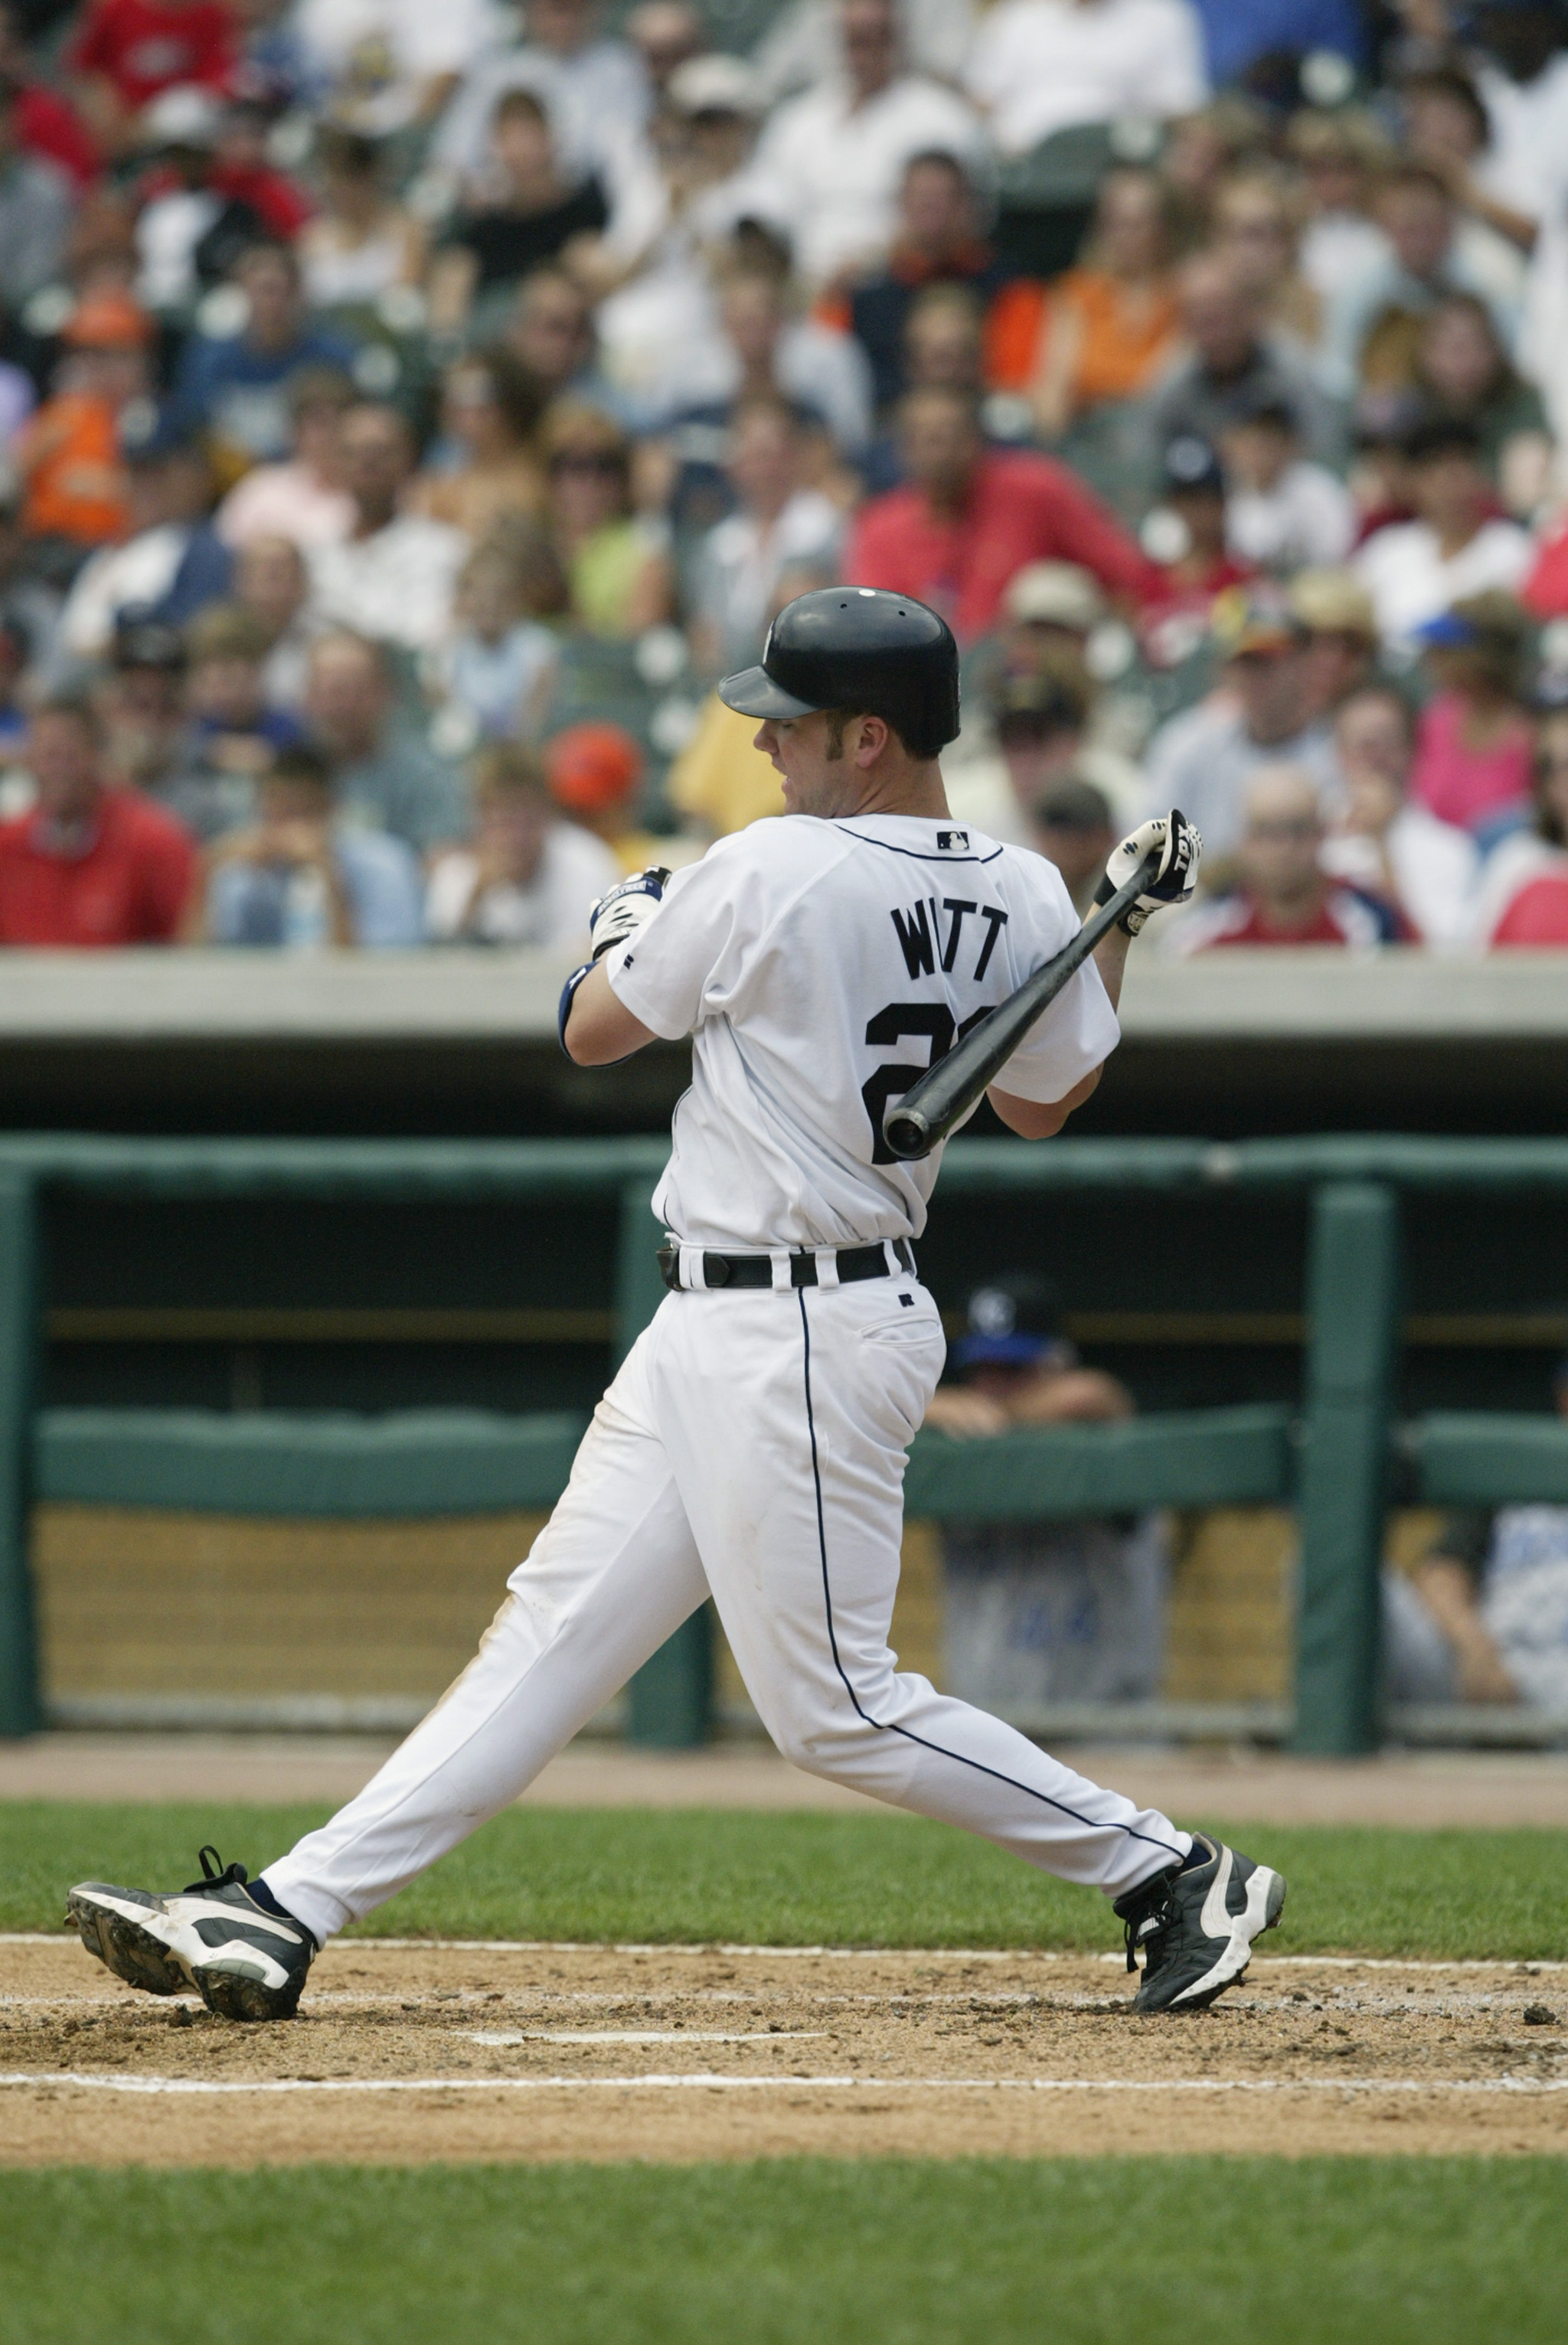 Kevin Witt swings at a pitch